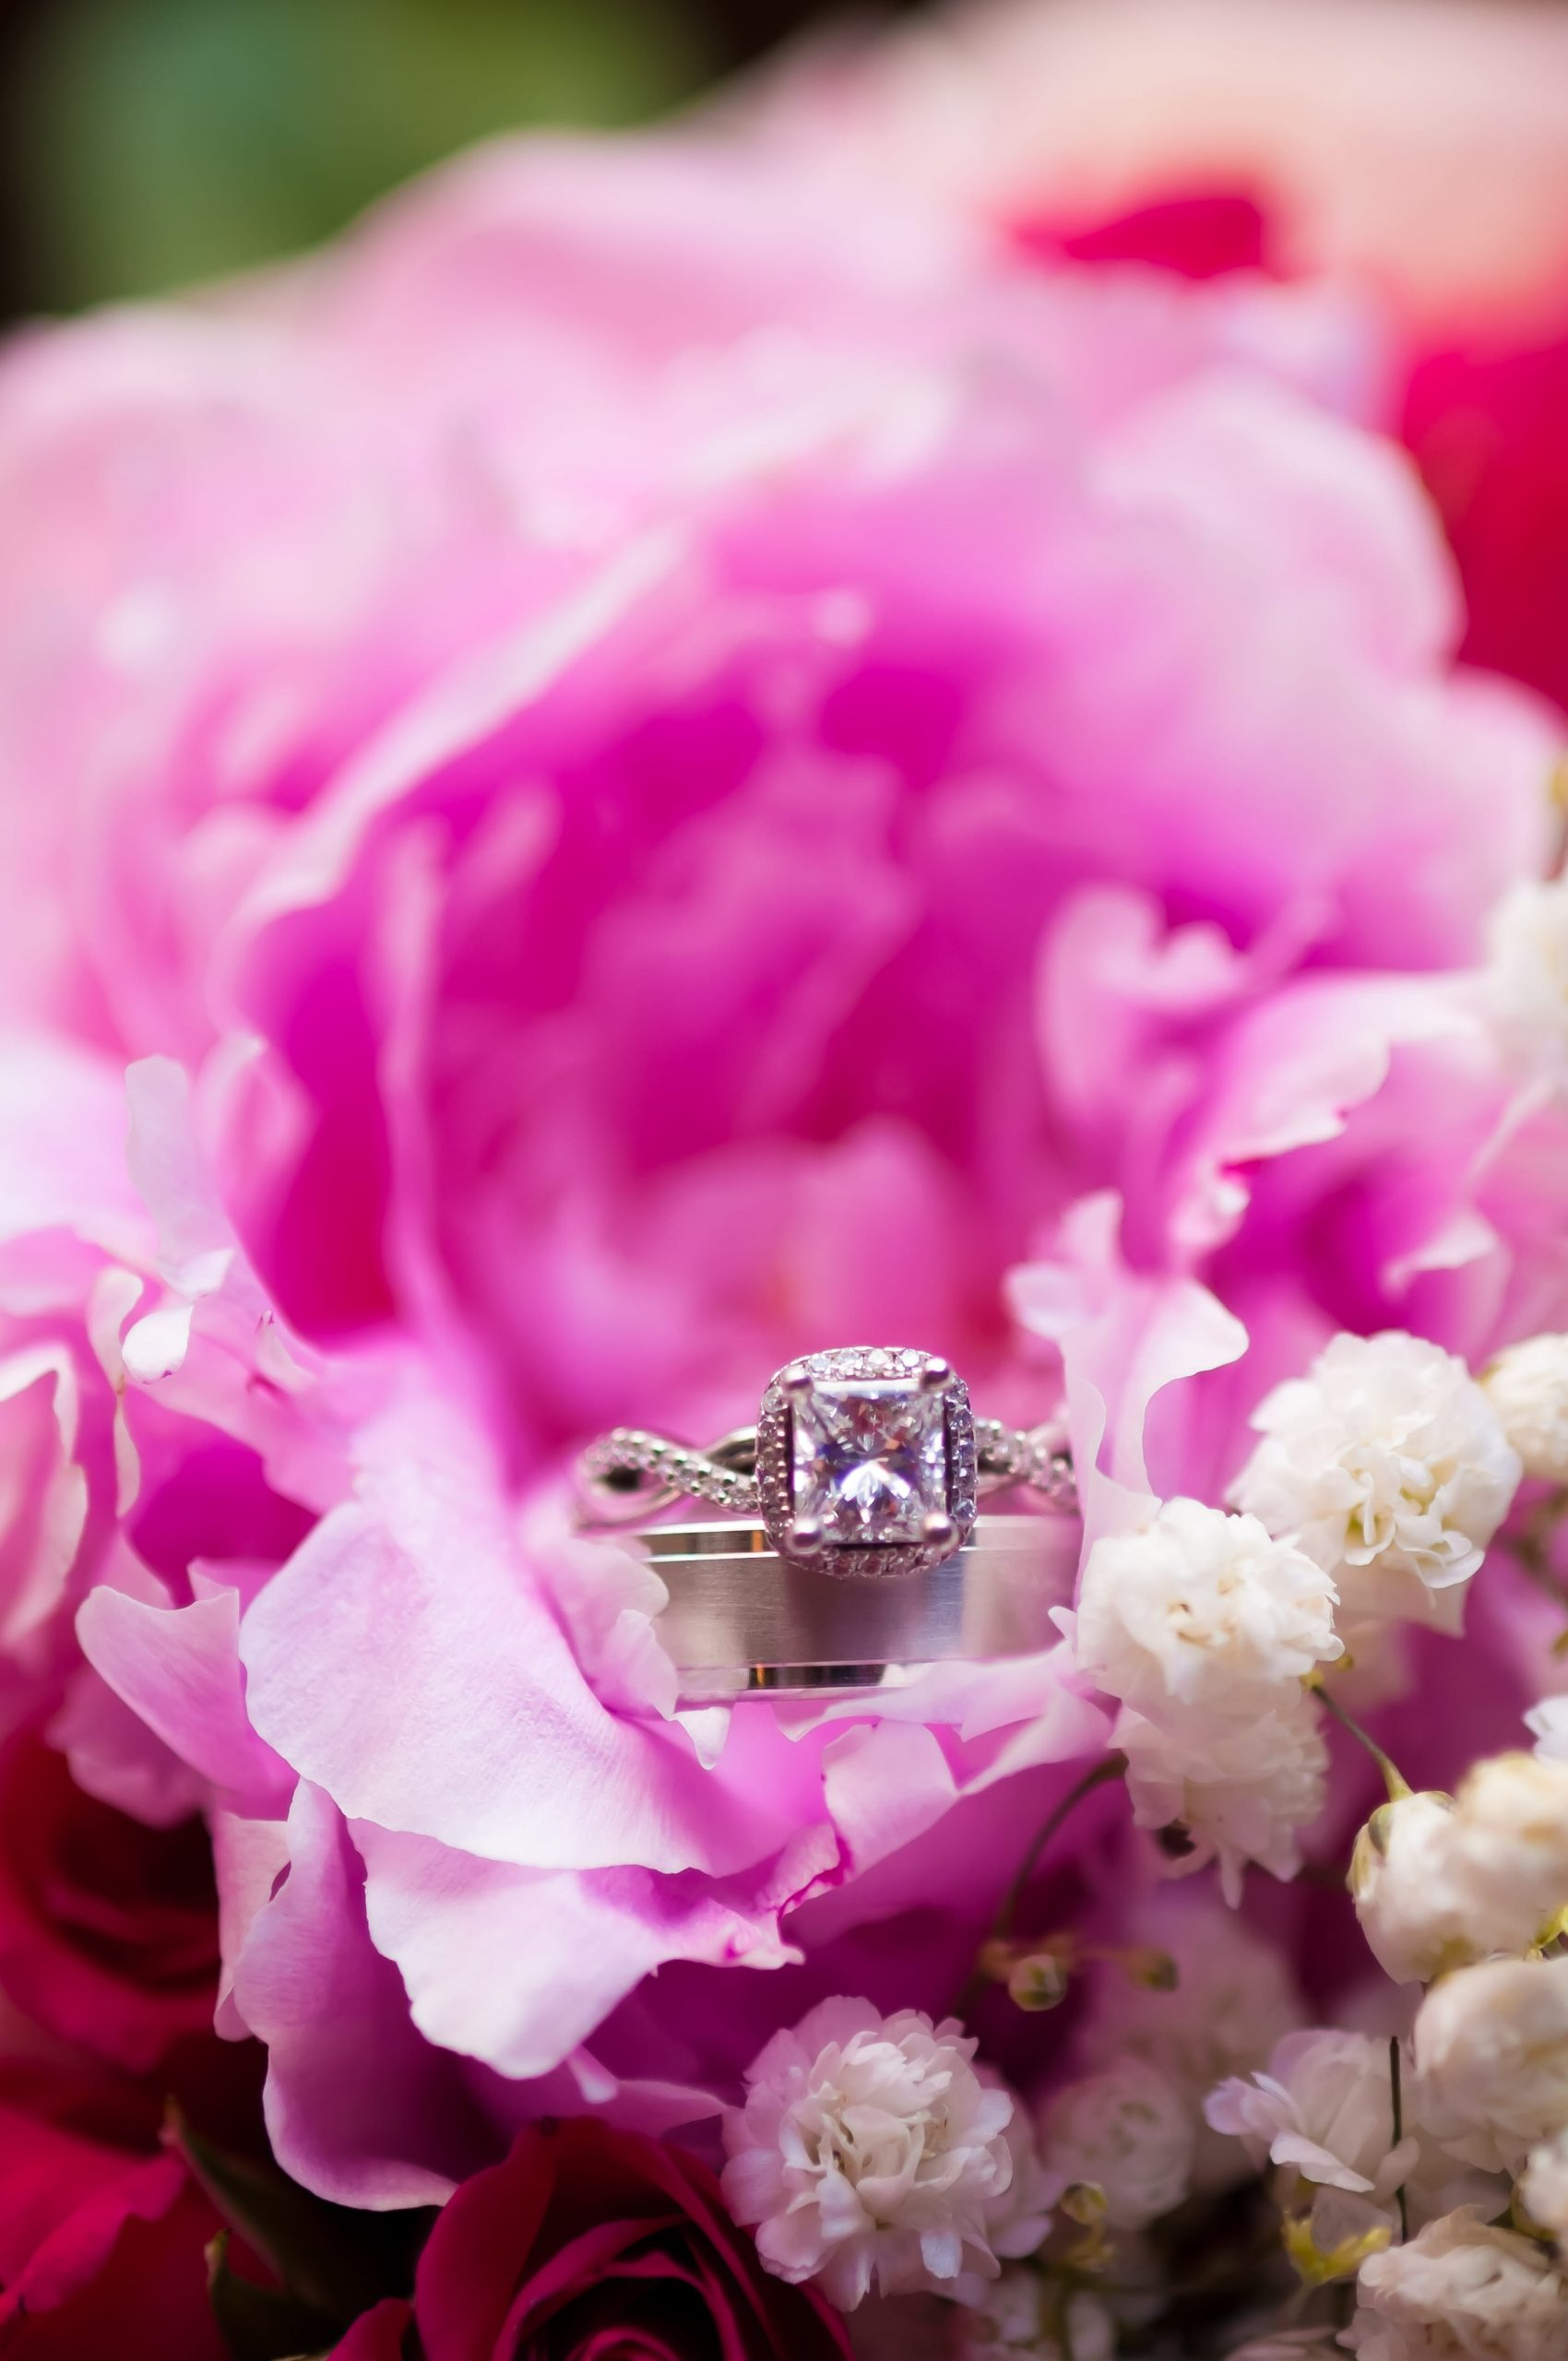 ring details in pink flower